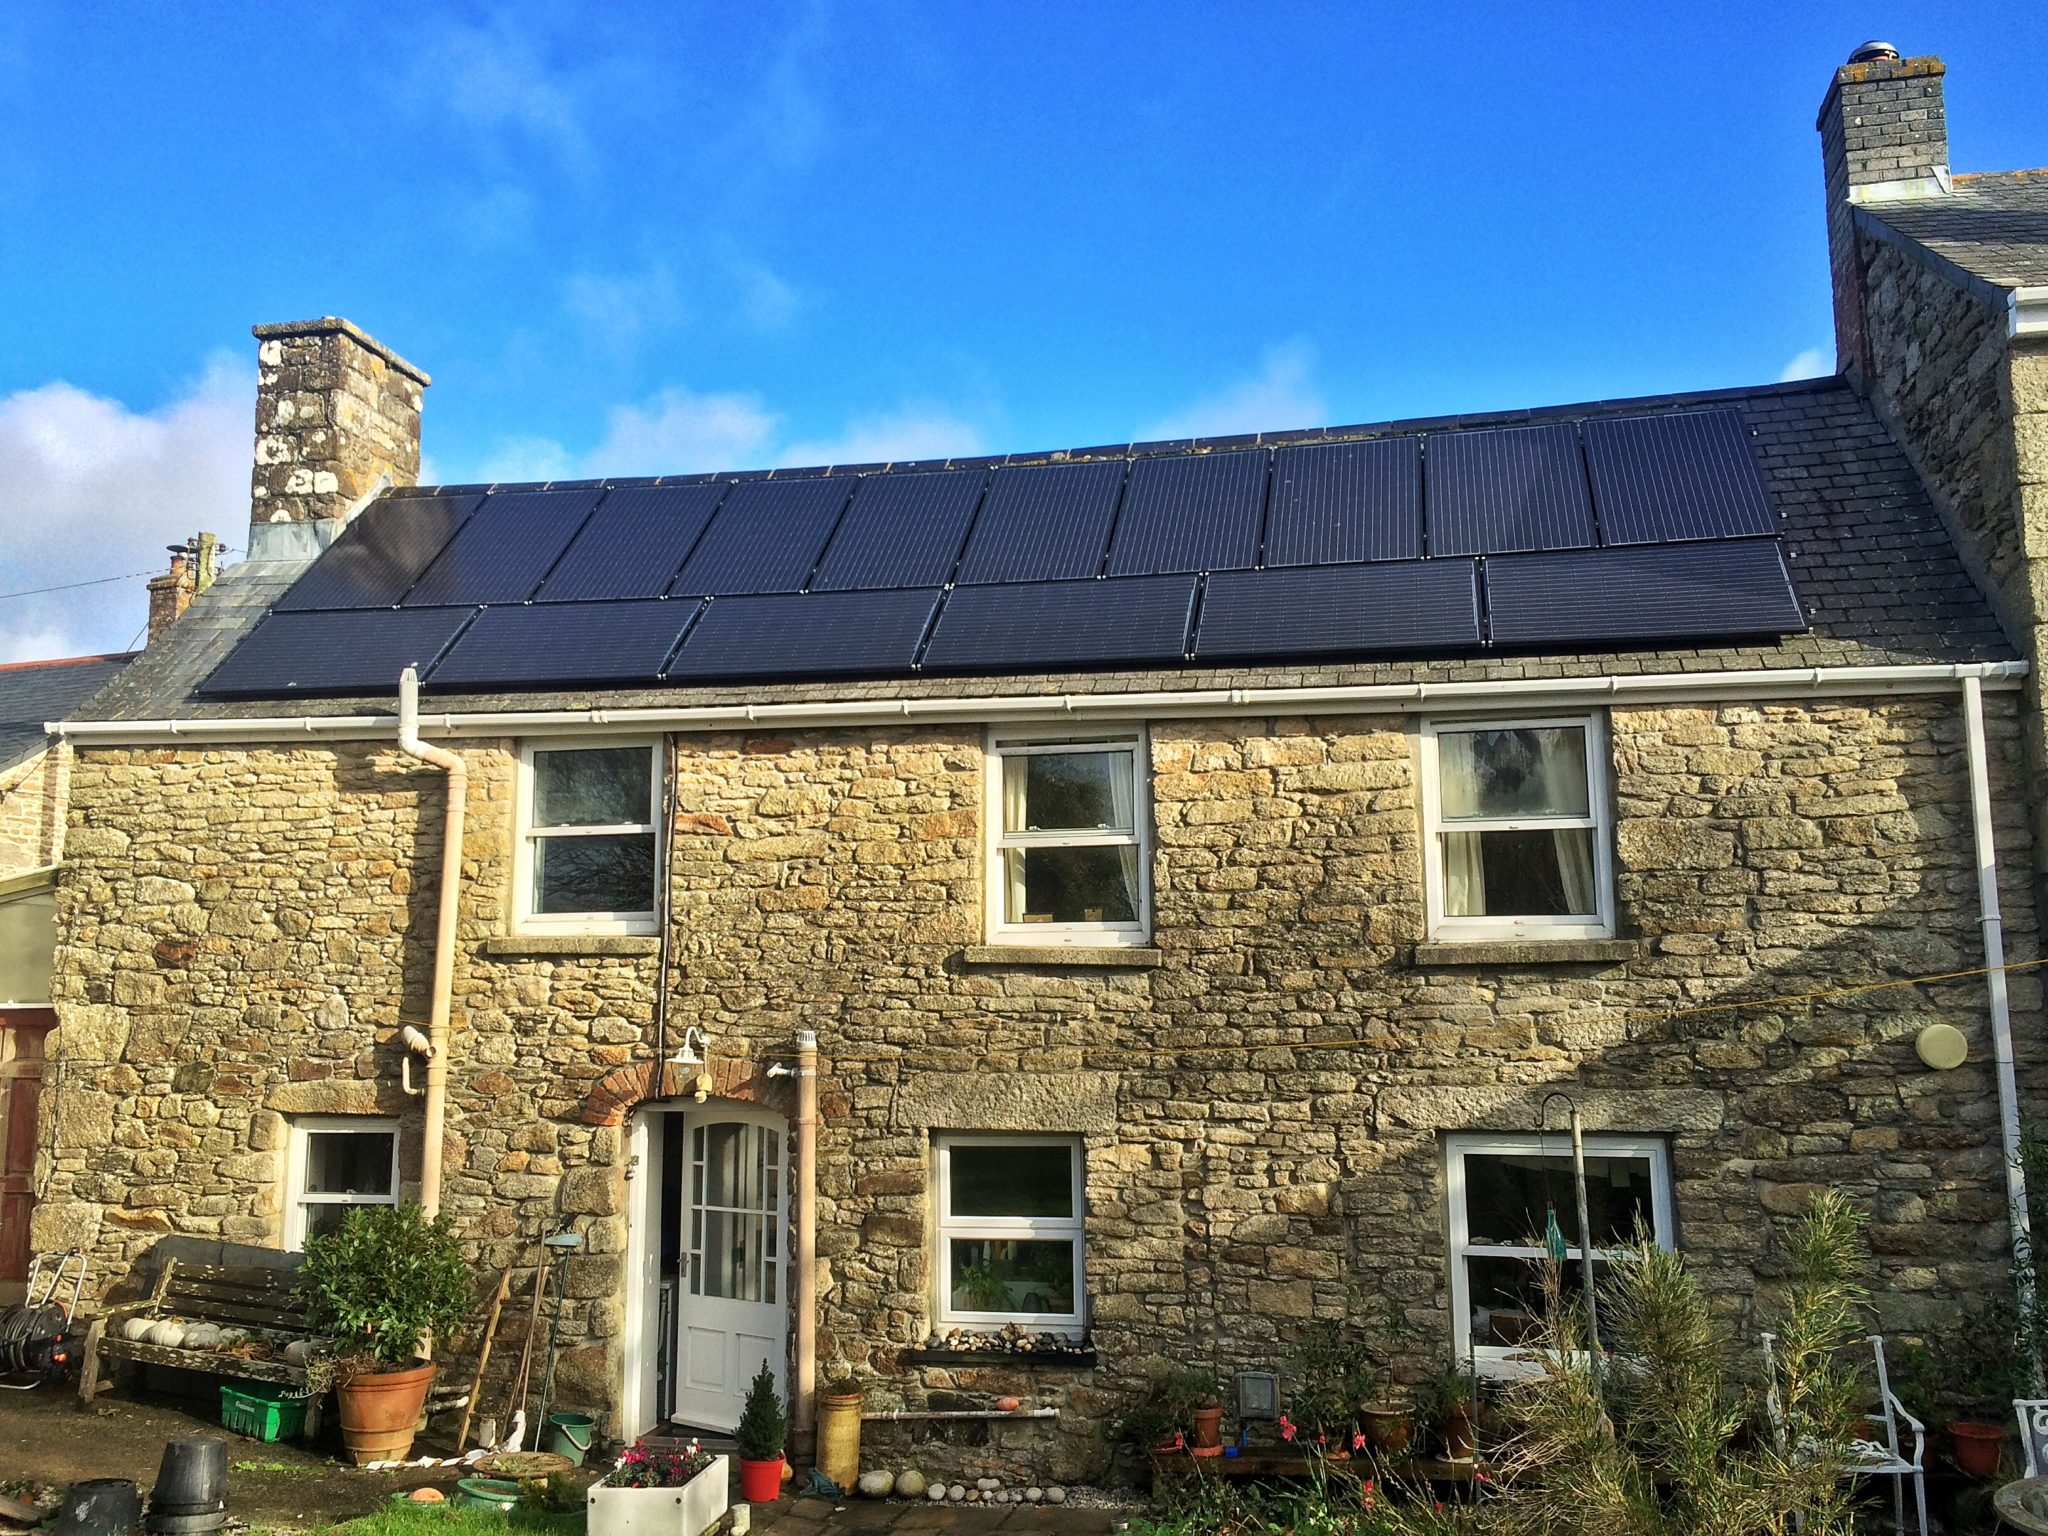 A 4kW SolarWorld solar PV installation in Breage, Cornwall